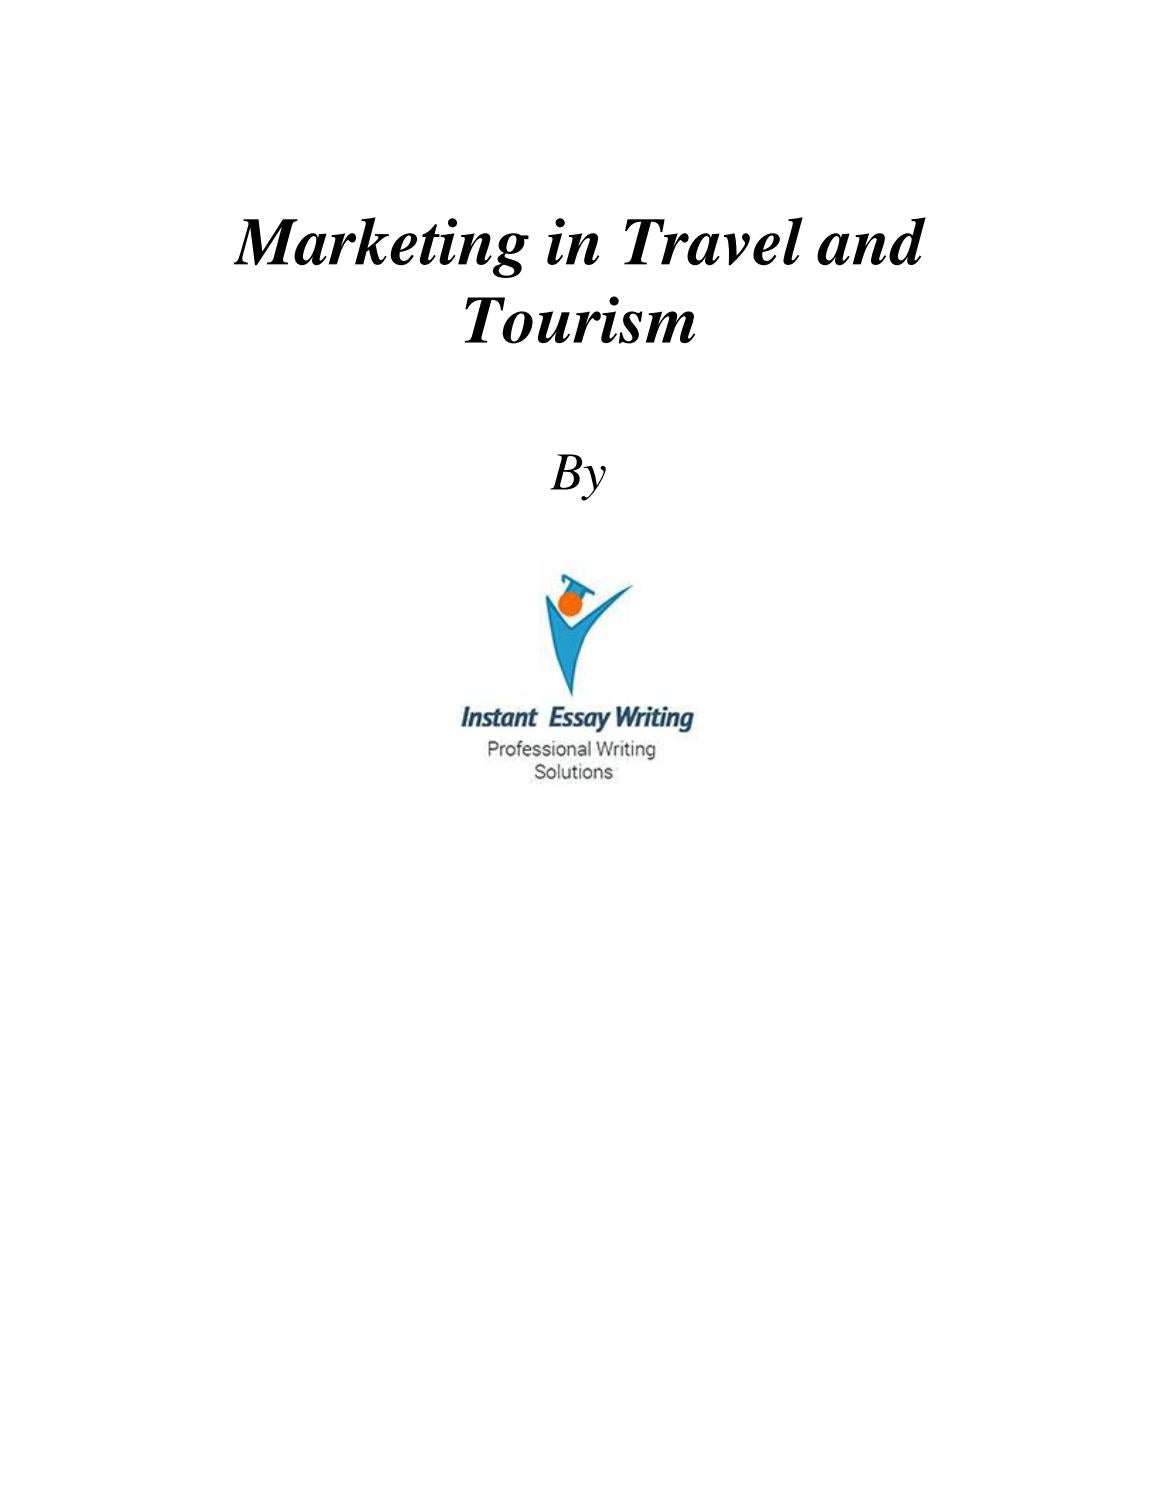 a samples on marketing in travel and tourism by instant a samples on marketing in travel and tourism by instant essay writing issuu